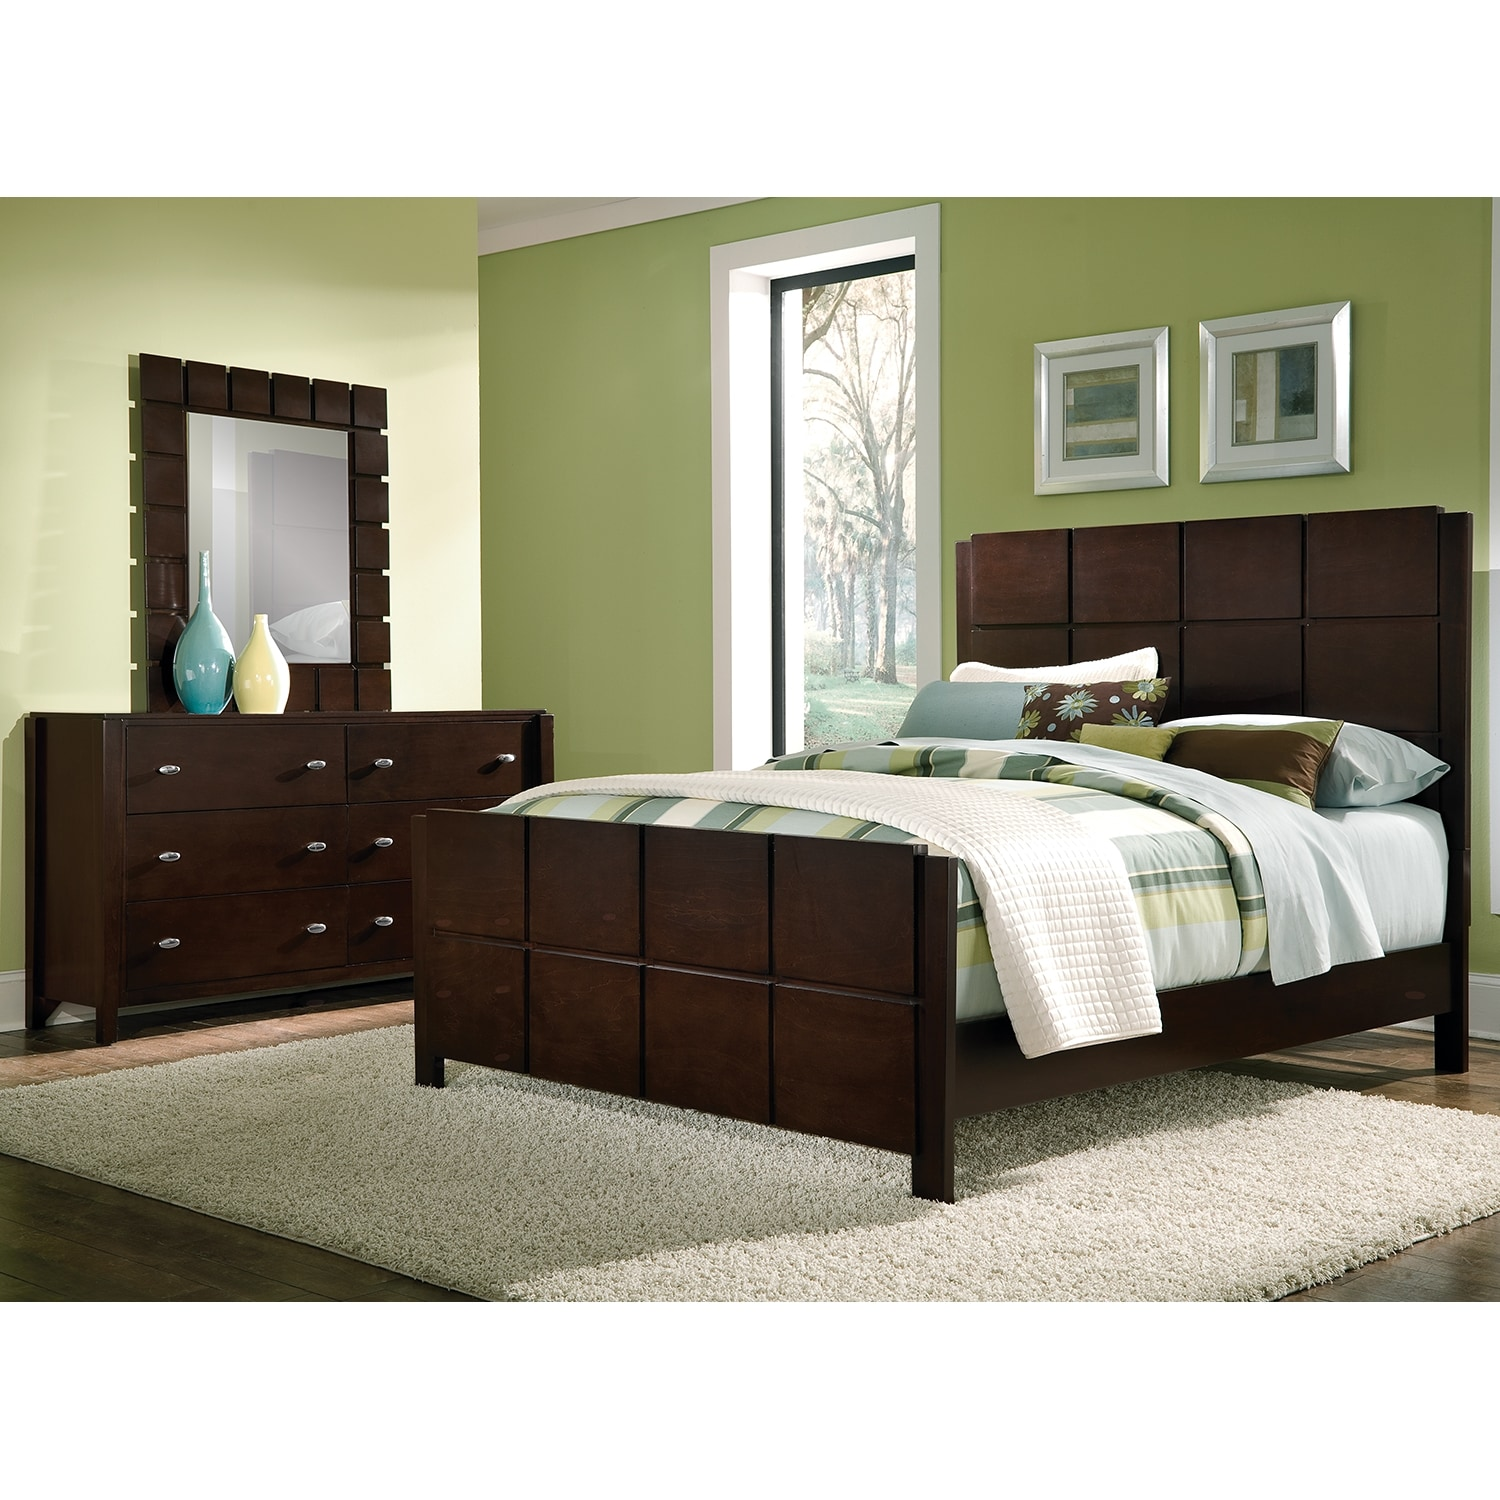 Mosaic 5 piece king bedroom set dark brown american for Where to get bedroom furniture